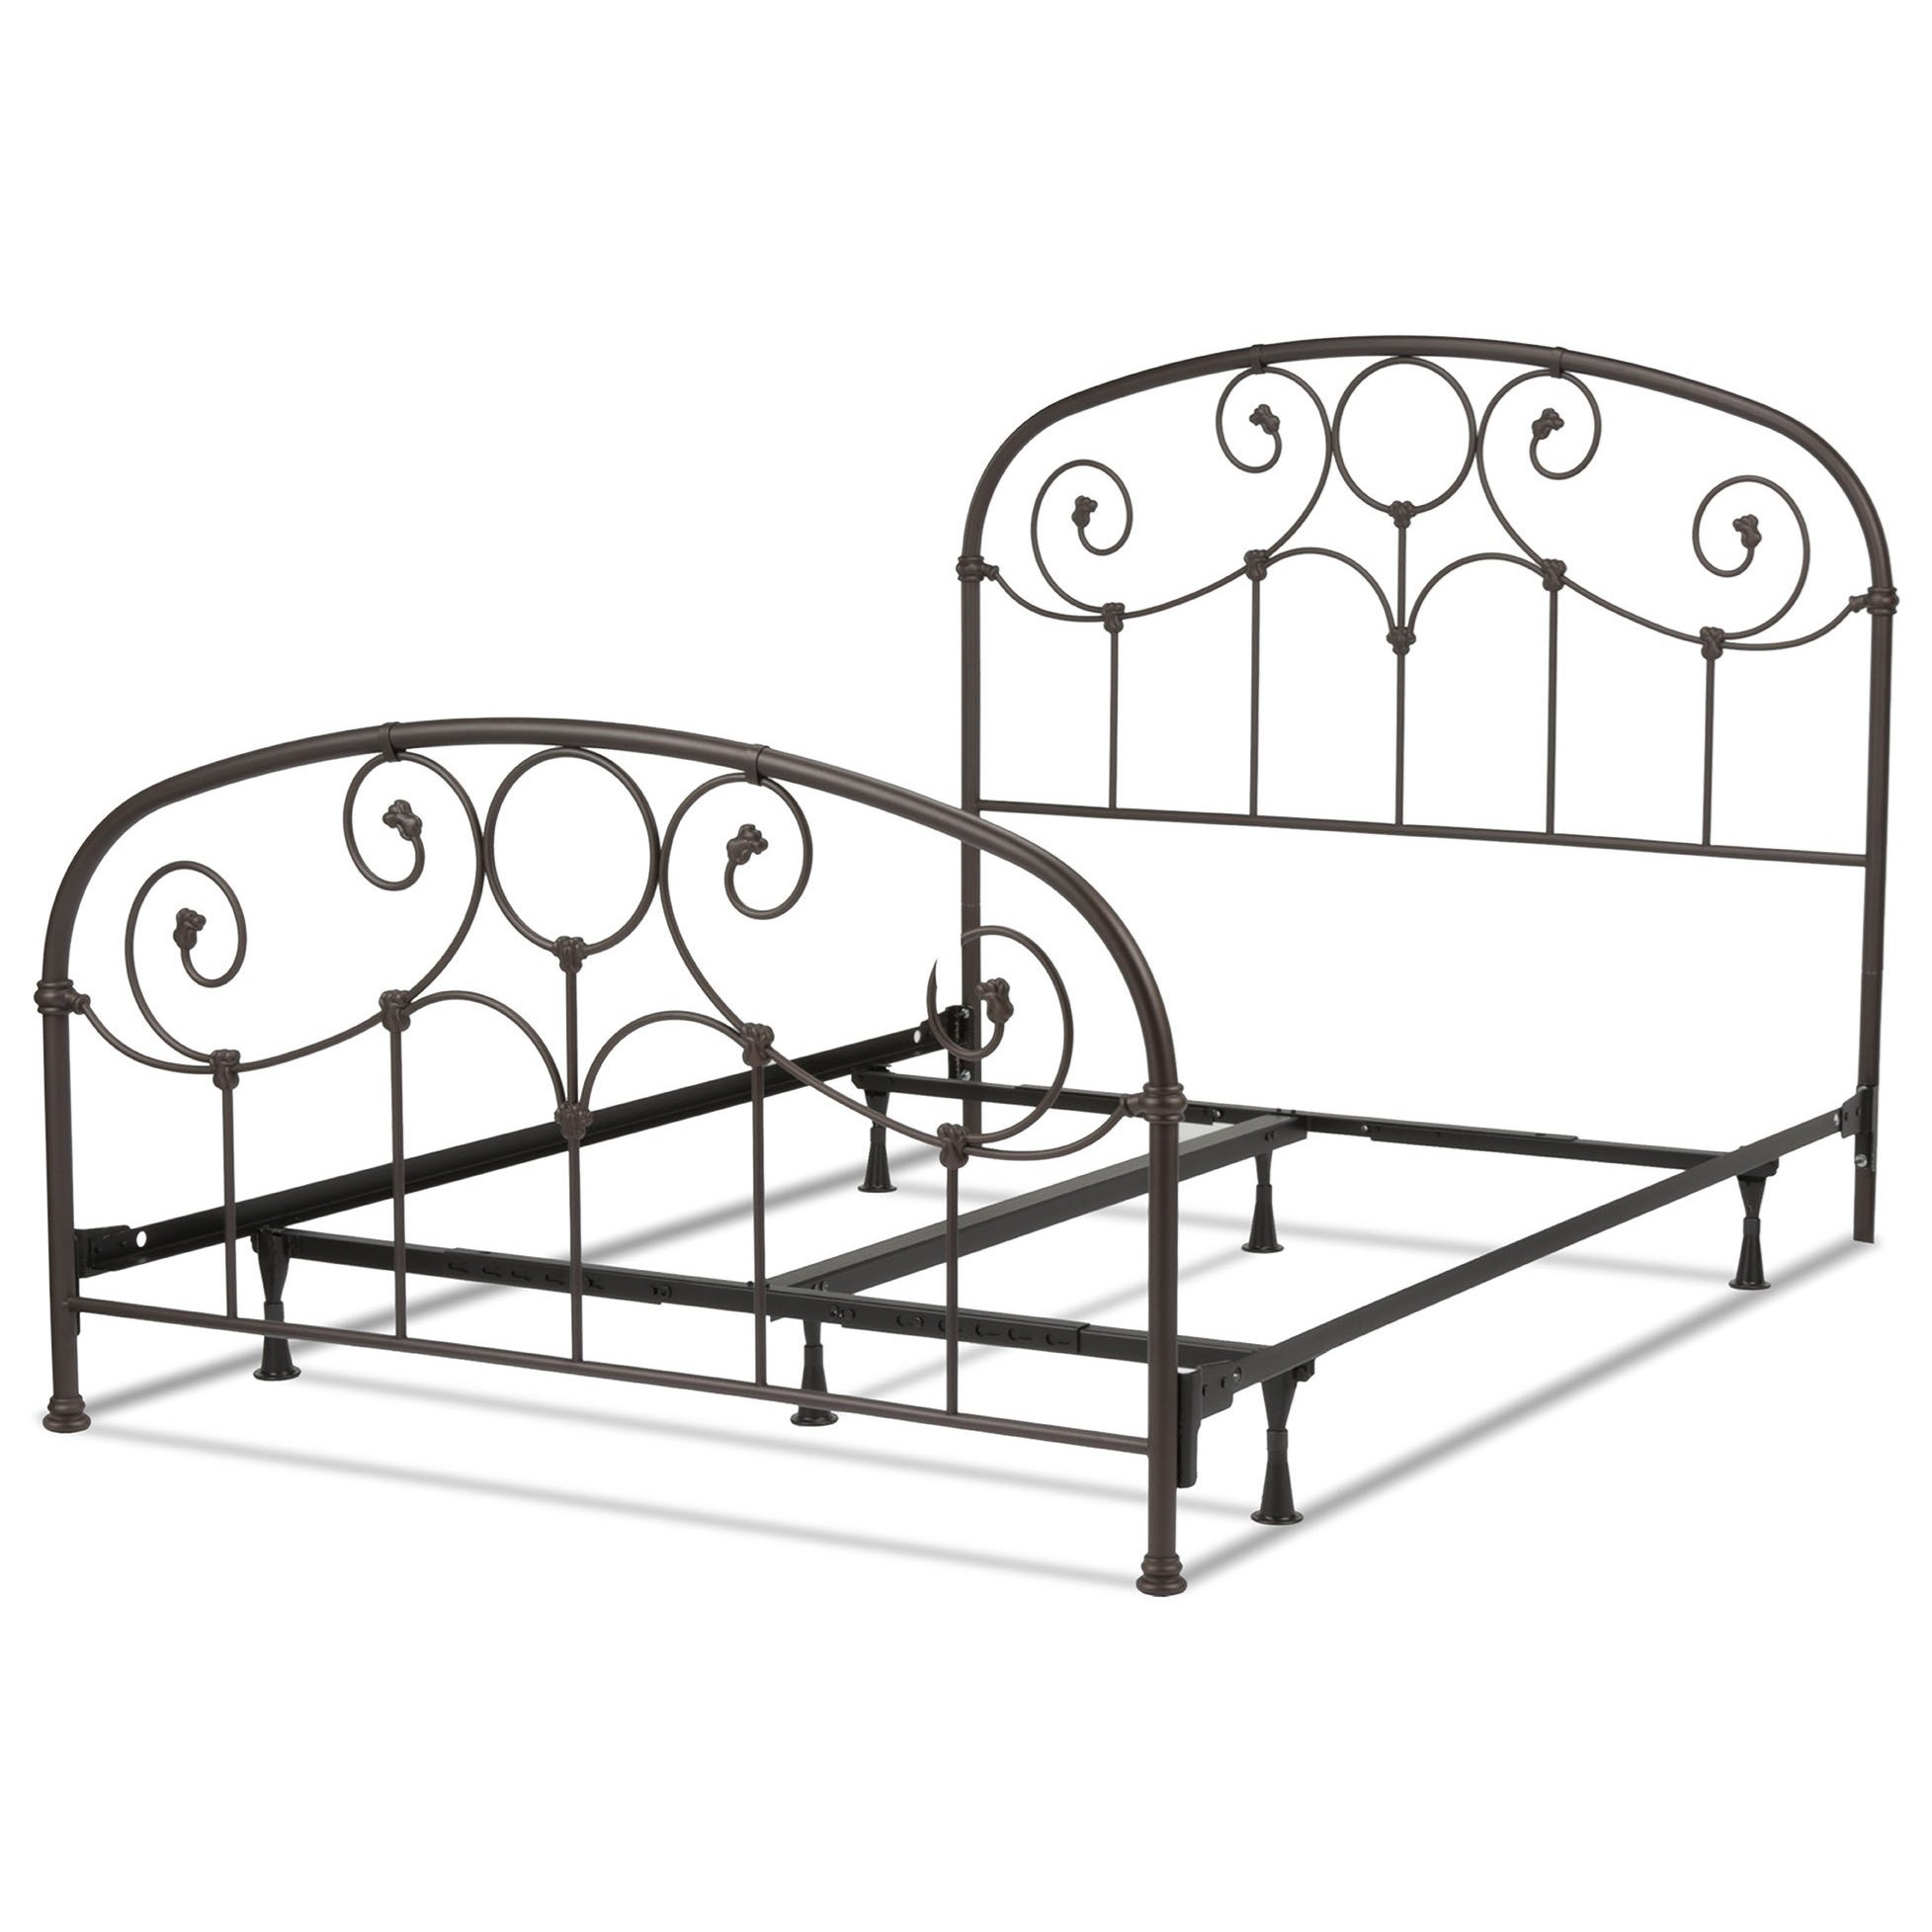 fashion bed group metal beds queen grafton metal bed with frame item number b41335 - Metal Frame Bed Queen